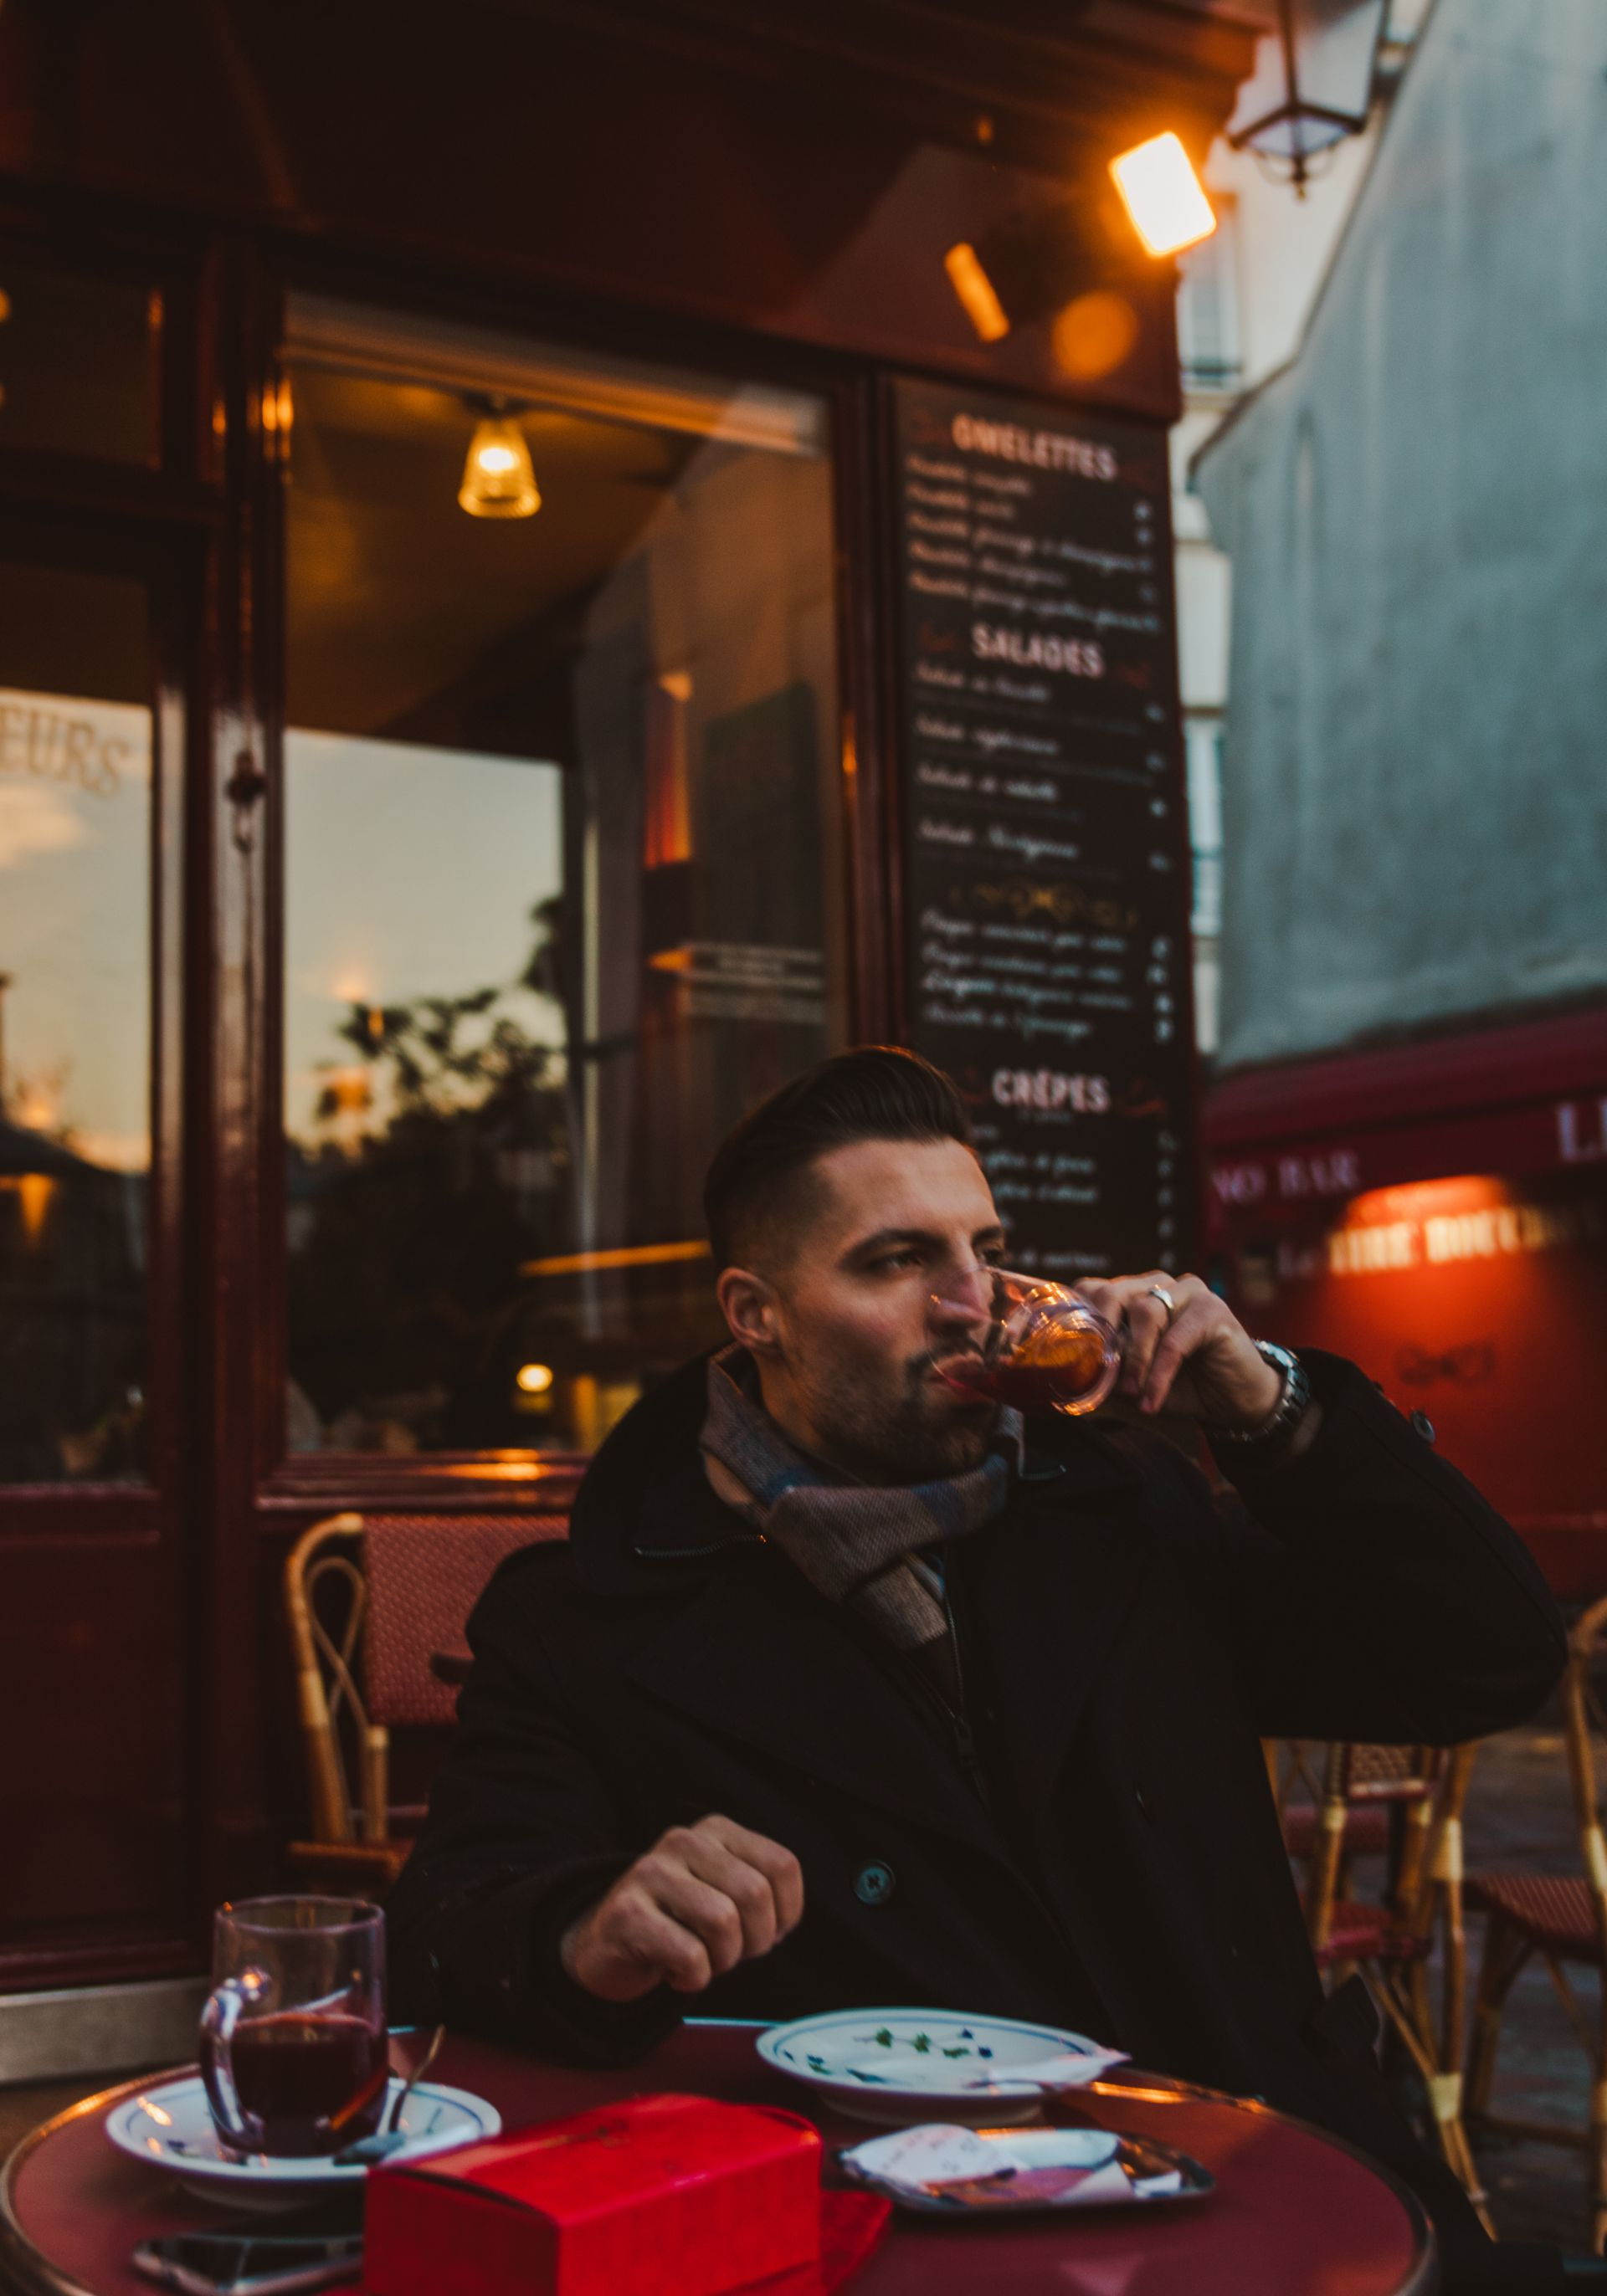 Dan Drinking Mulled Wine at Le Consulat in Paris France